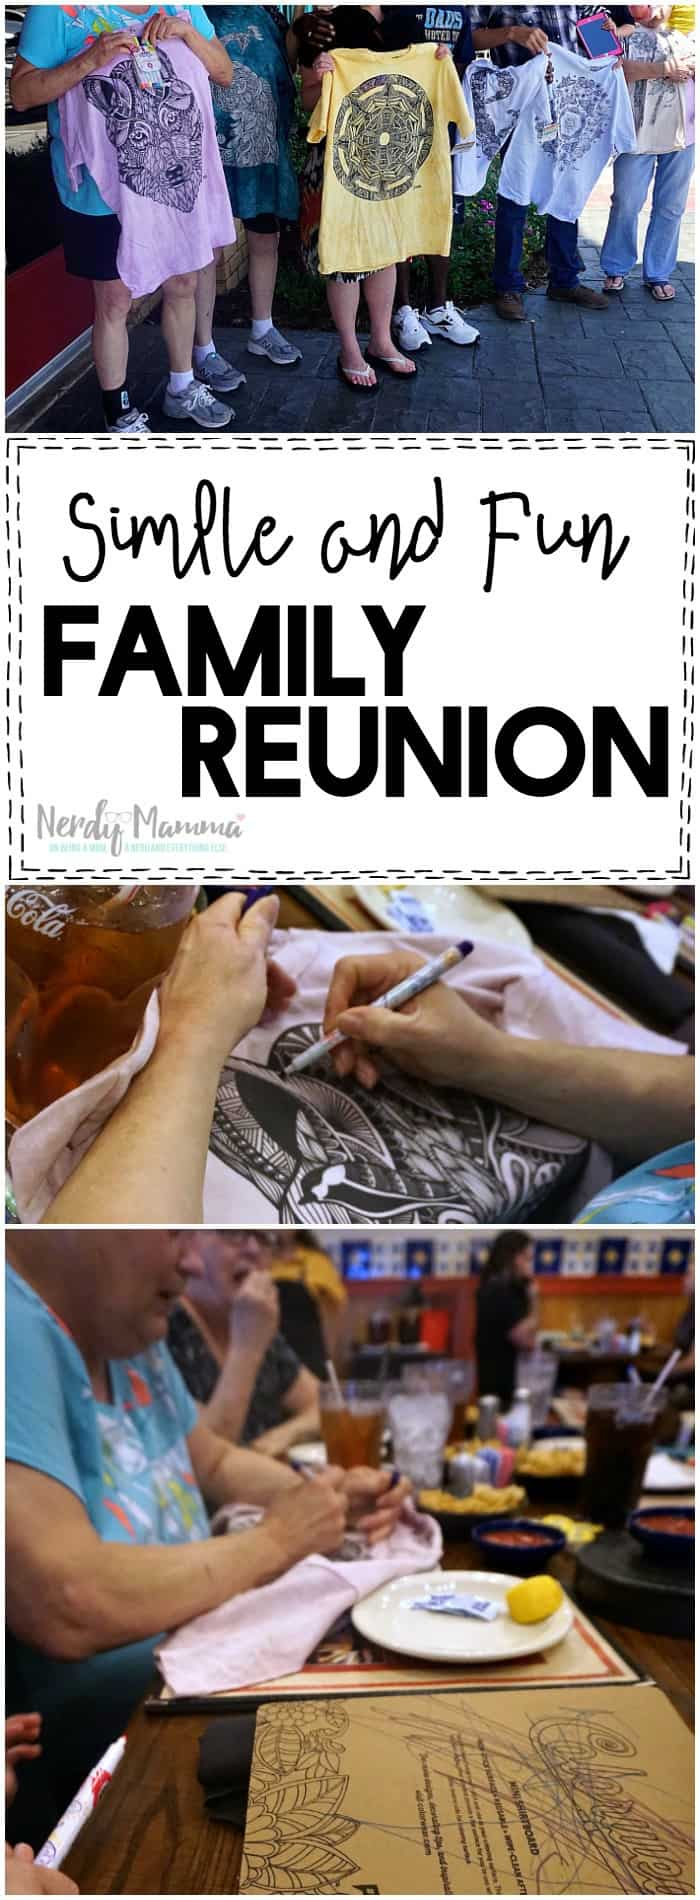 These simple and fun family reunion ideas are so easy! Love this!